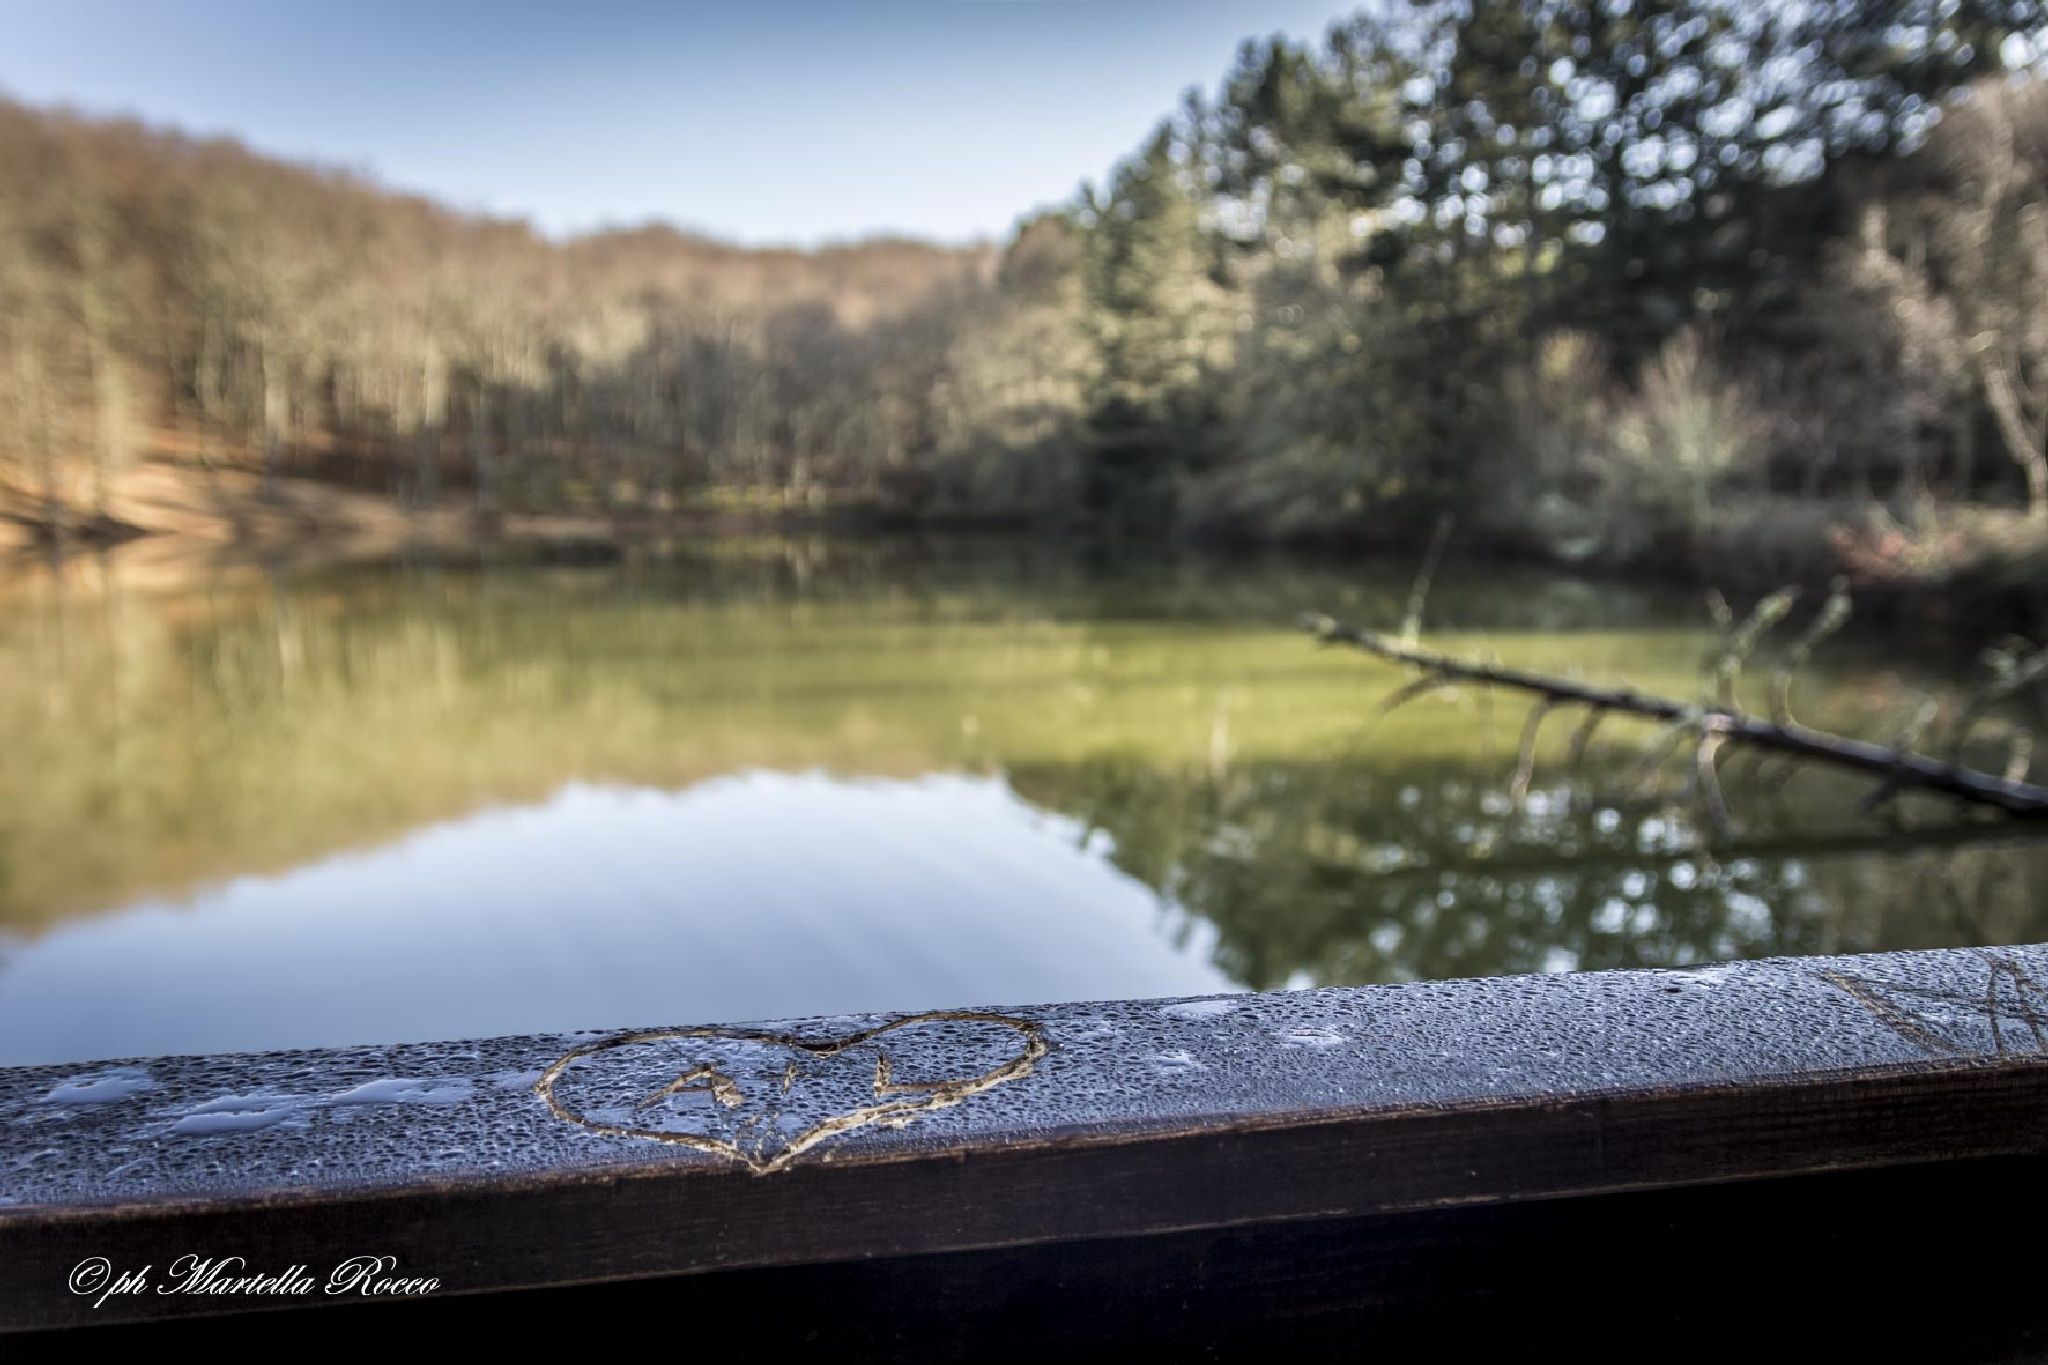 Artificial lake by PhotoM.R.60D